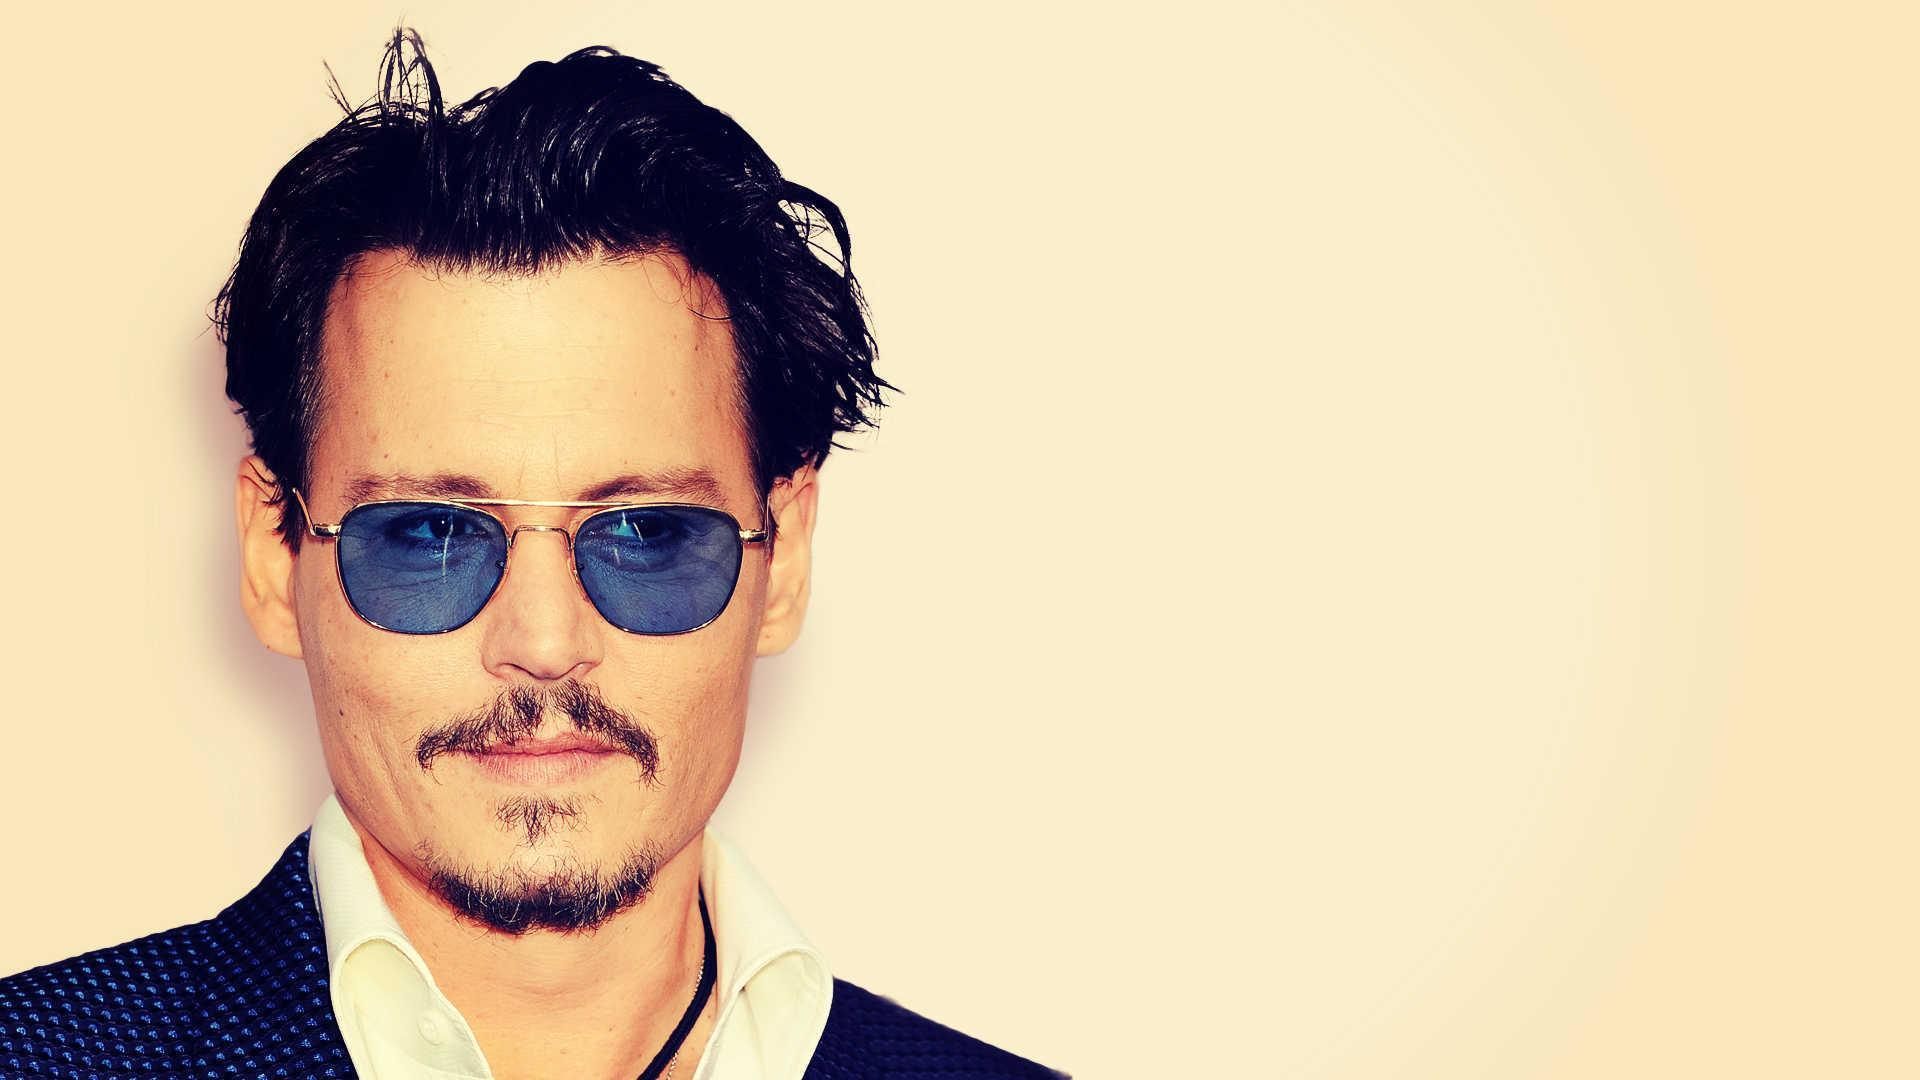 Download HD Wallpapers of Hollywood actor Johnny Depp 1920x1080